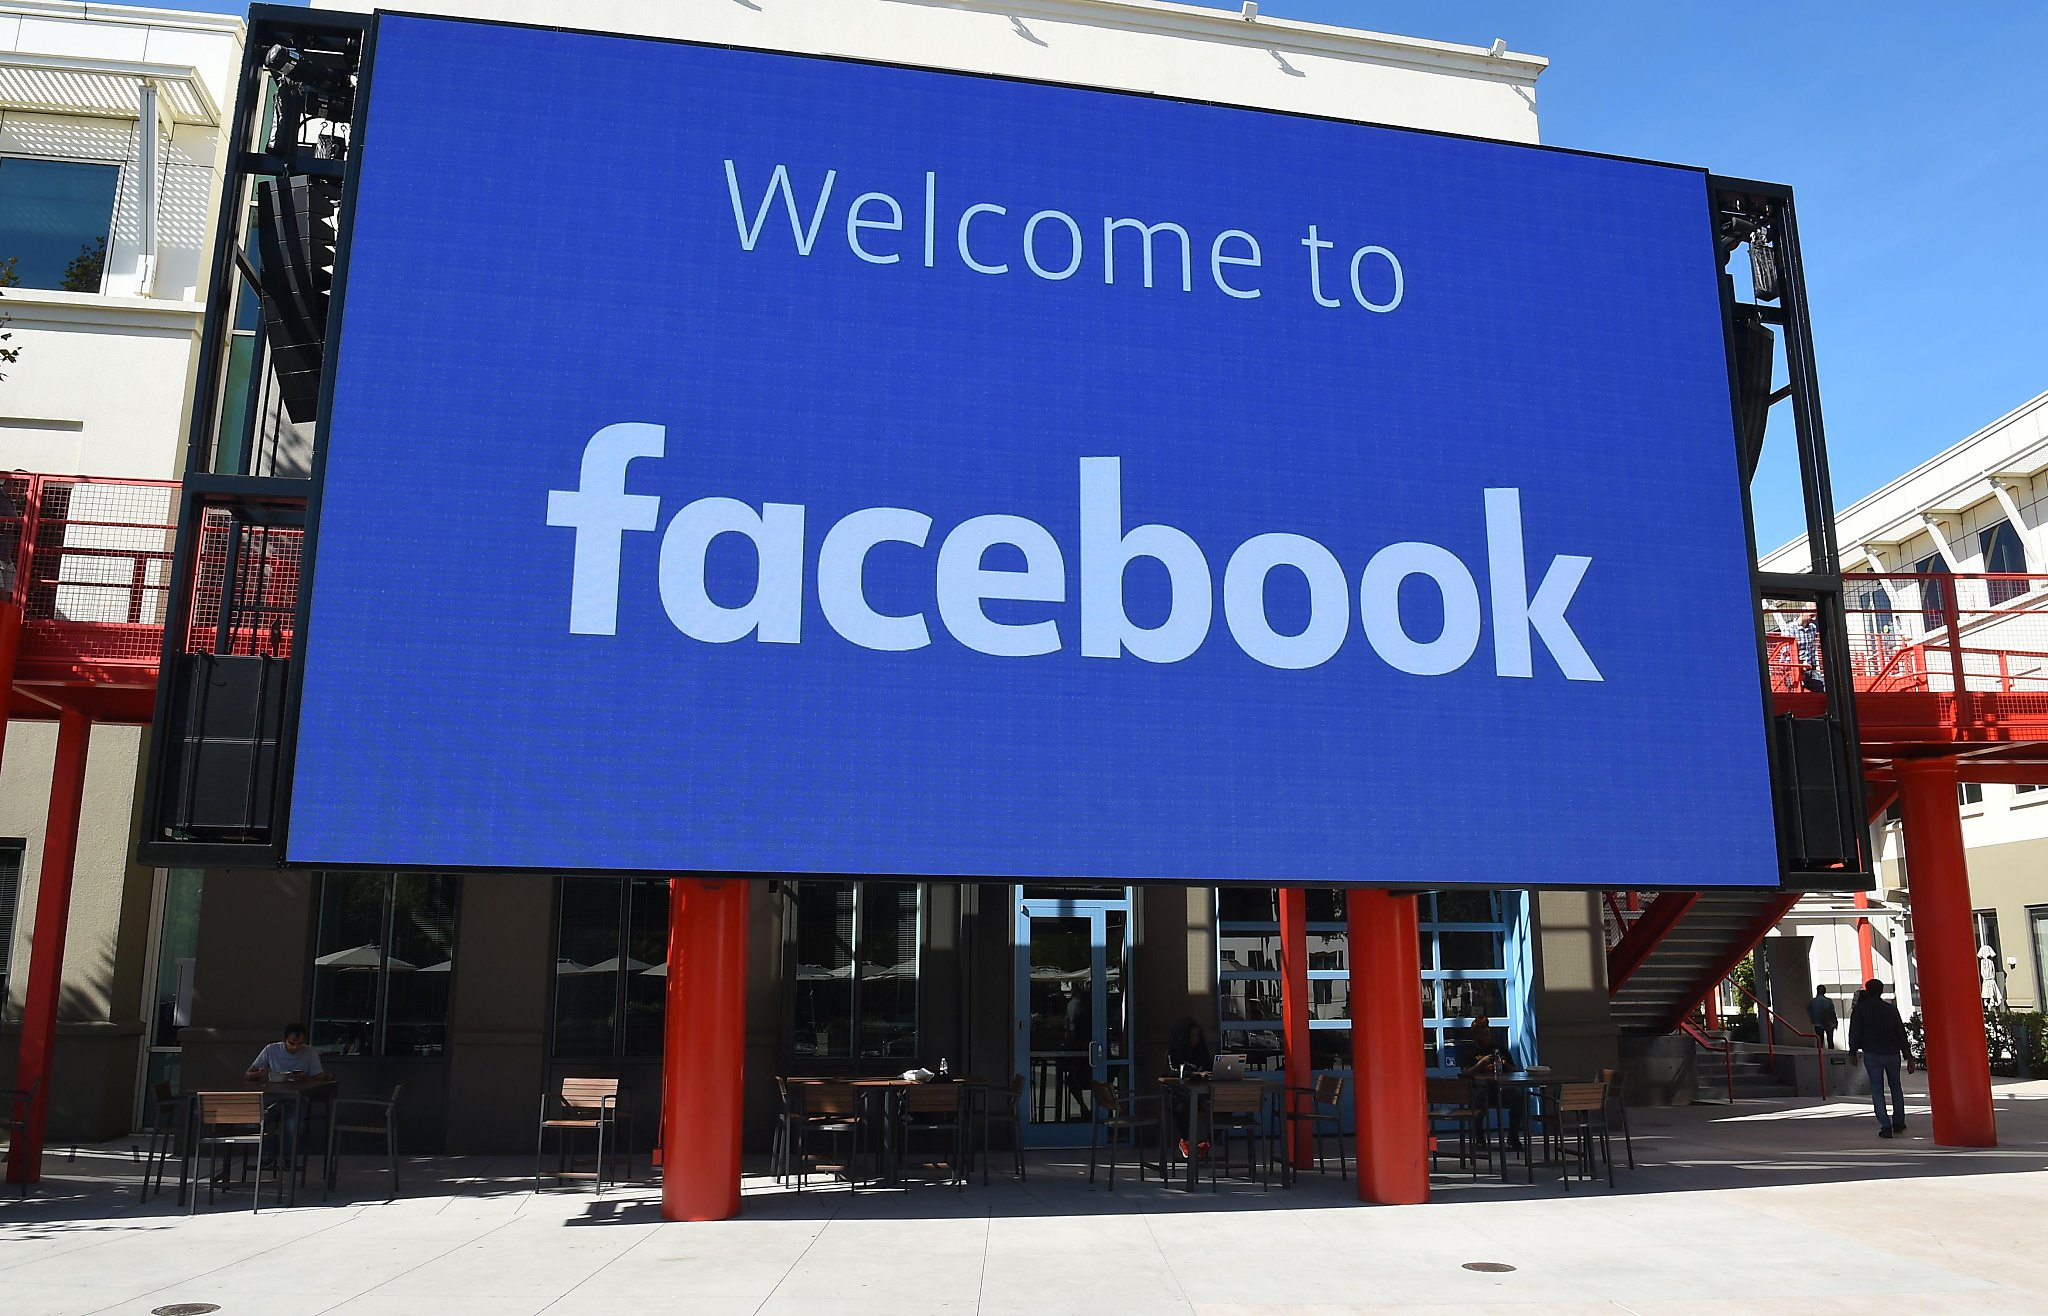 Facebook extends work-from-home option until July 2021, joining Google and Uber